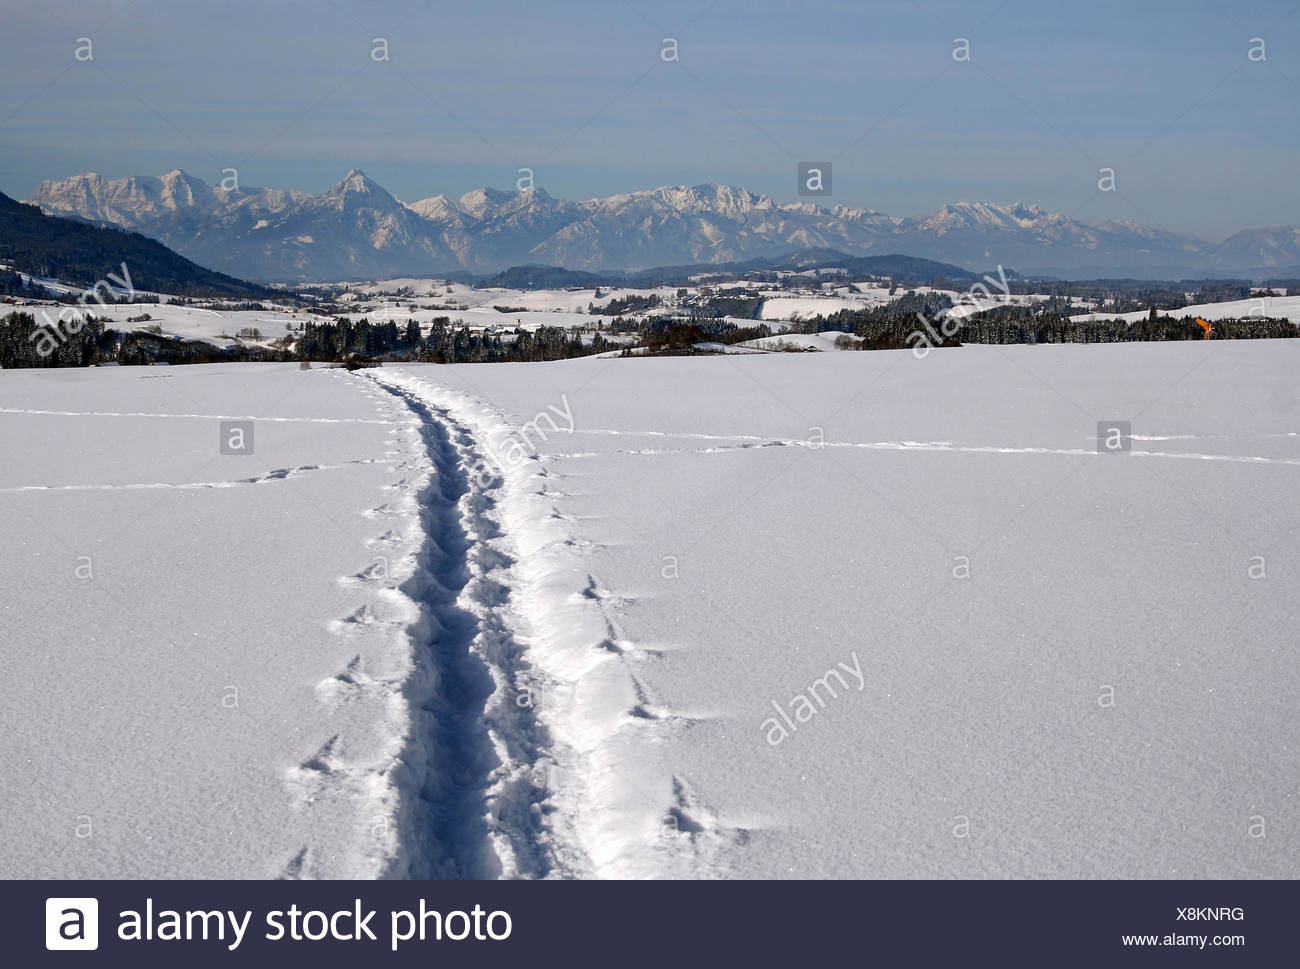 mountains winter sense - Stock Image